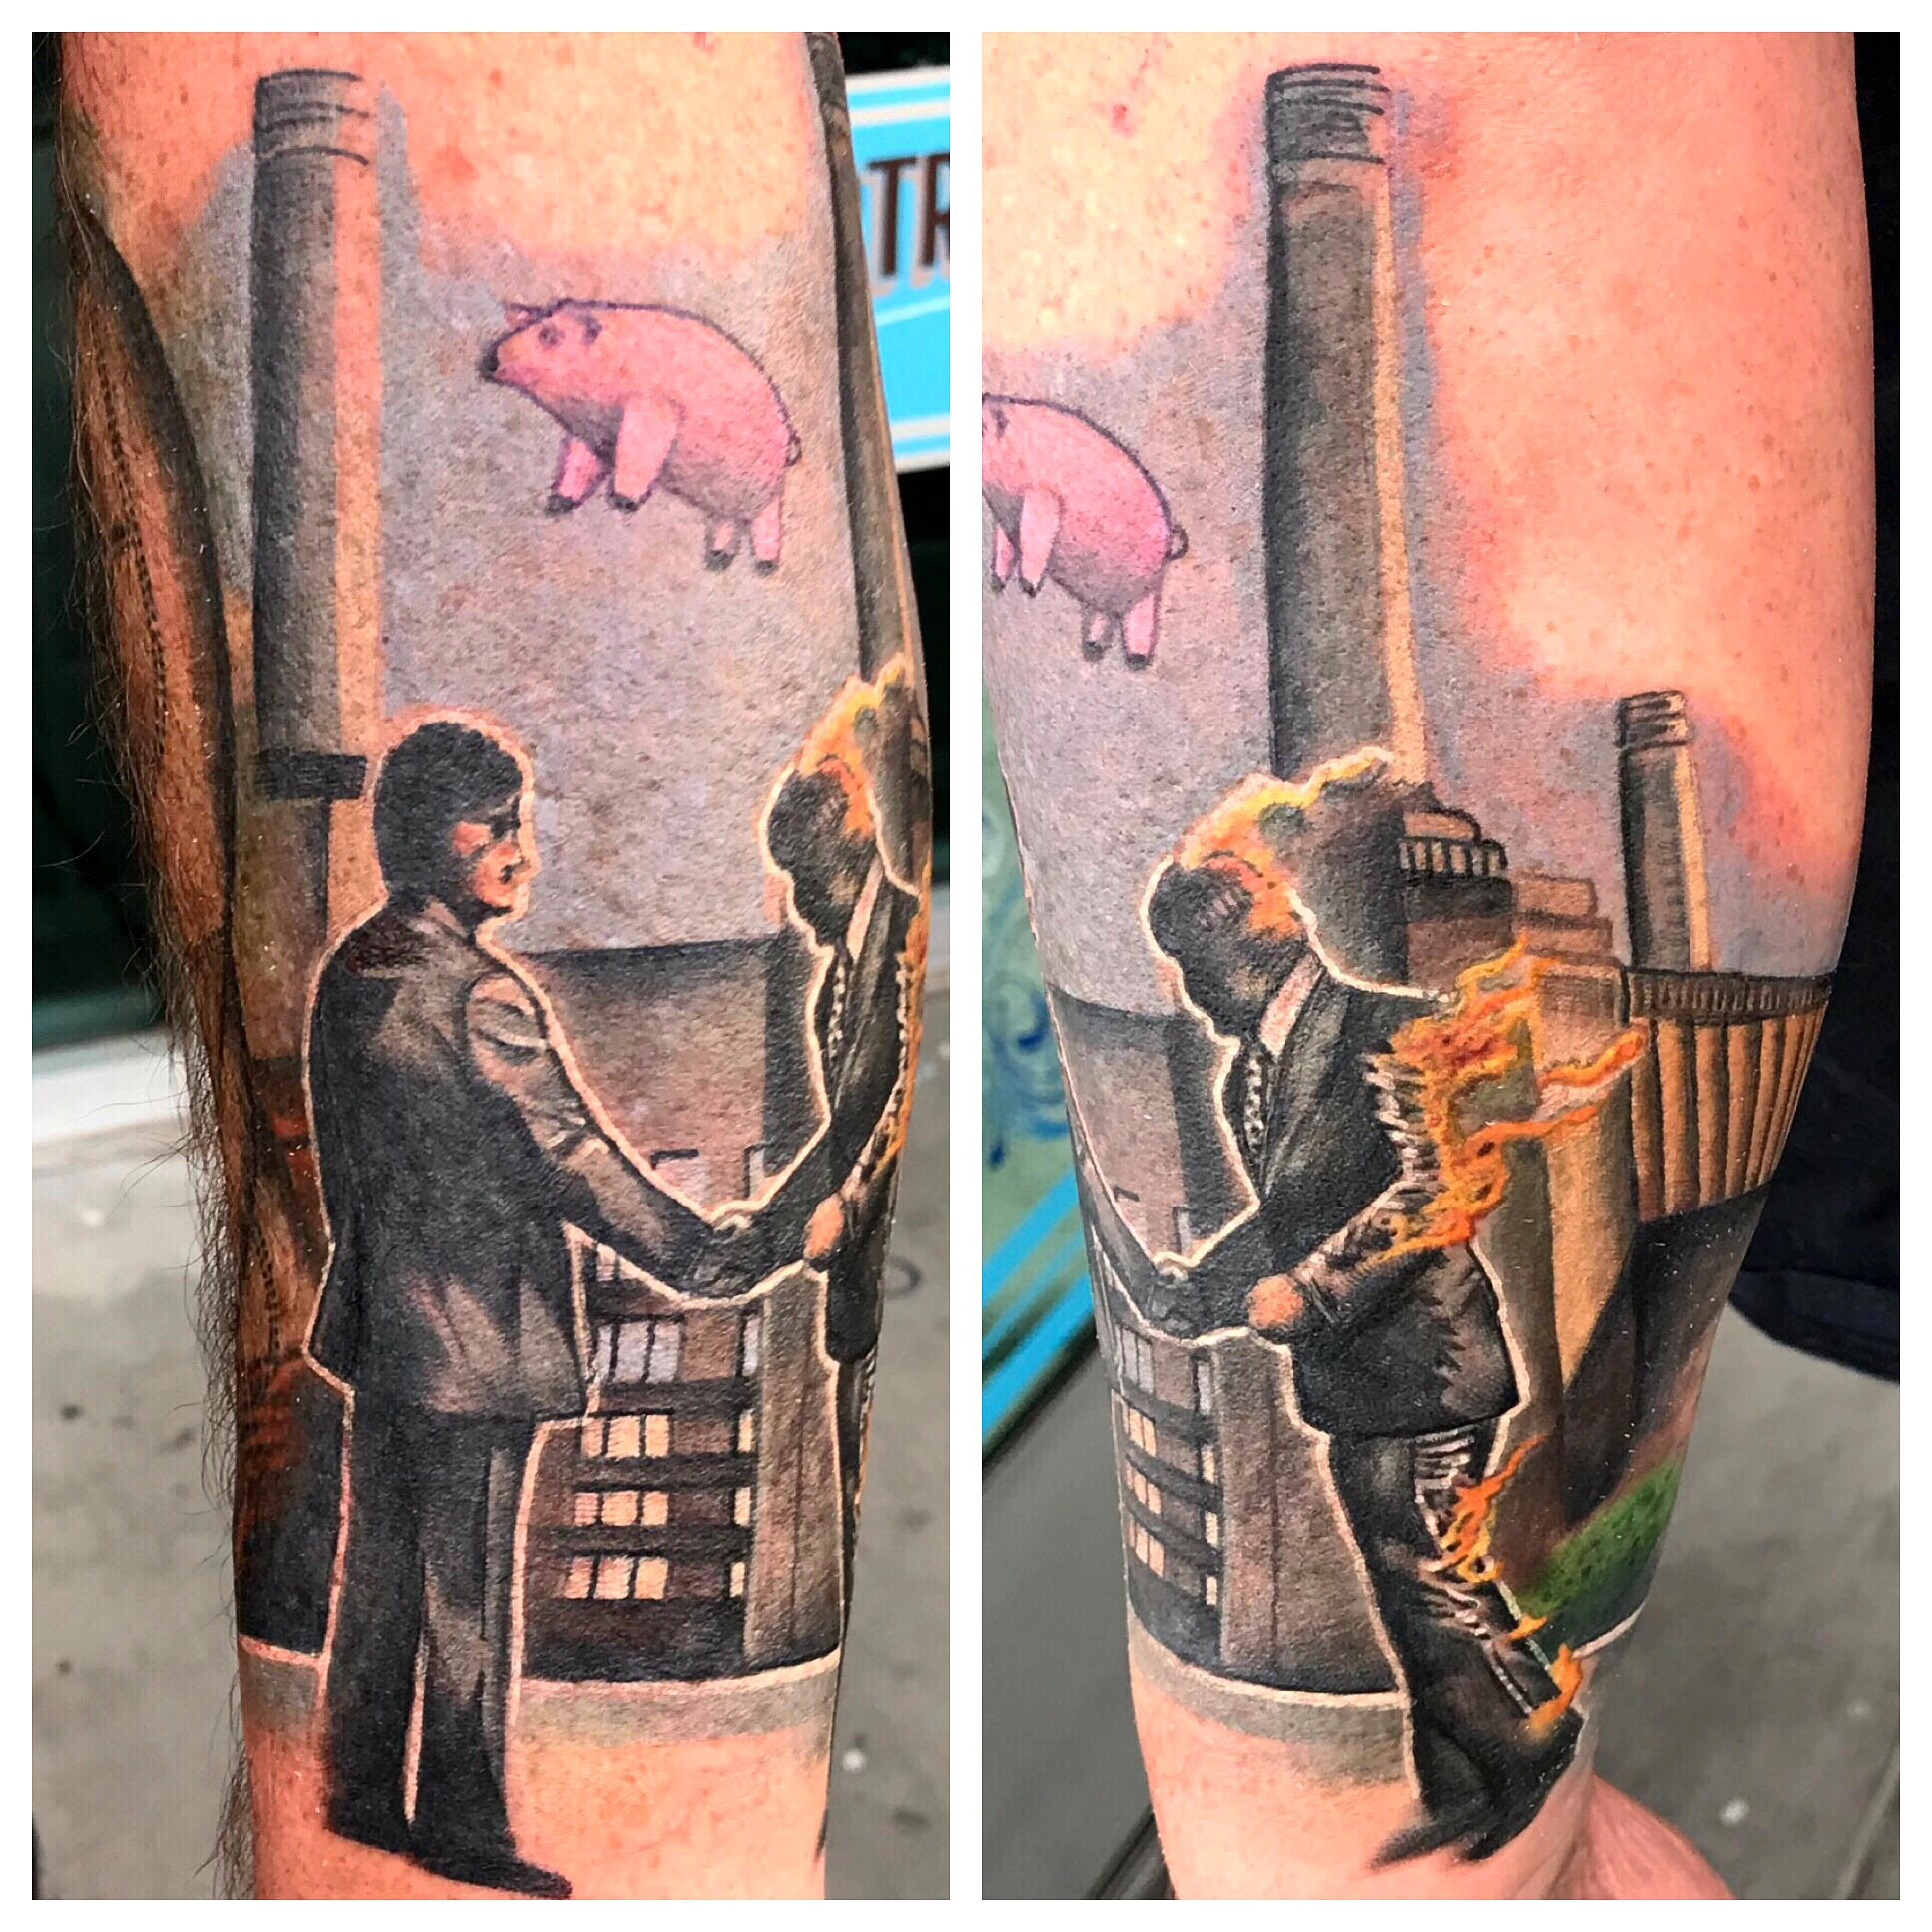 Wish you were here tattoo by Krystof